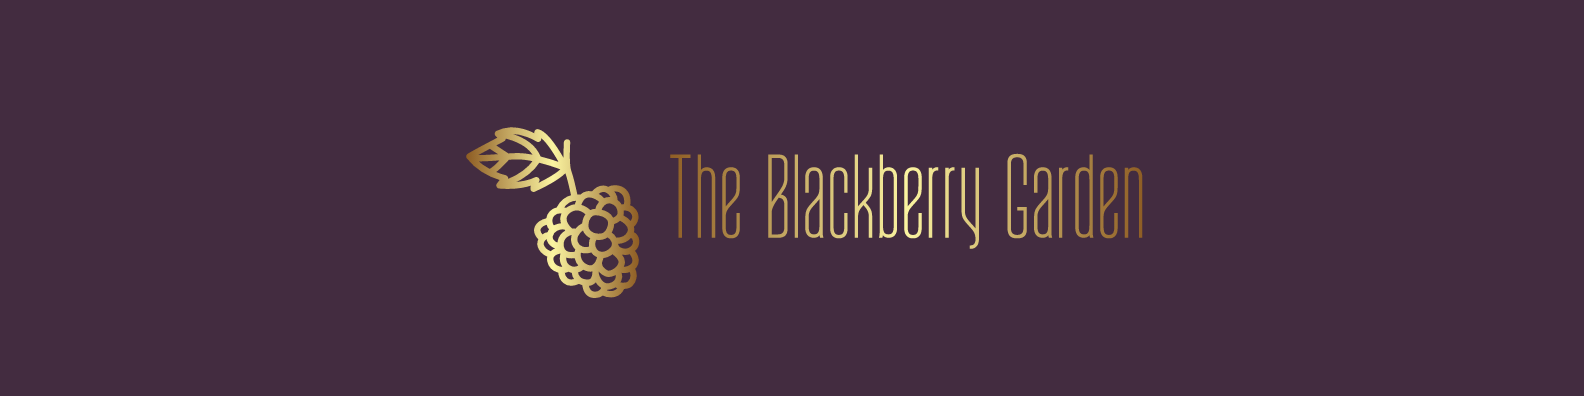 the blackberry garden